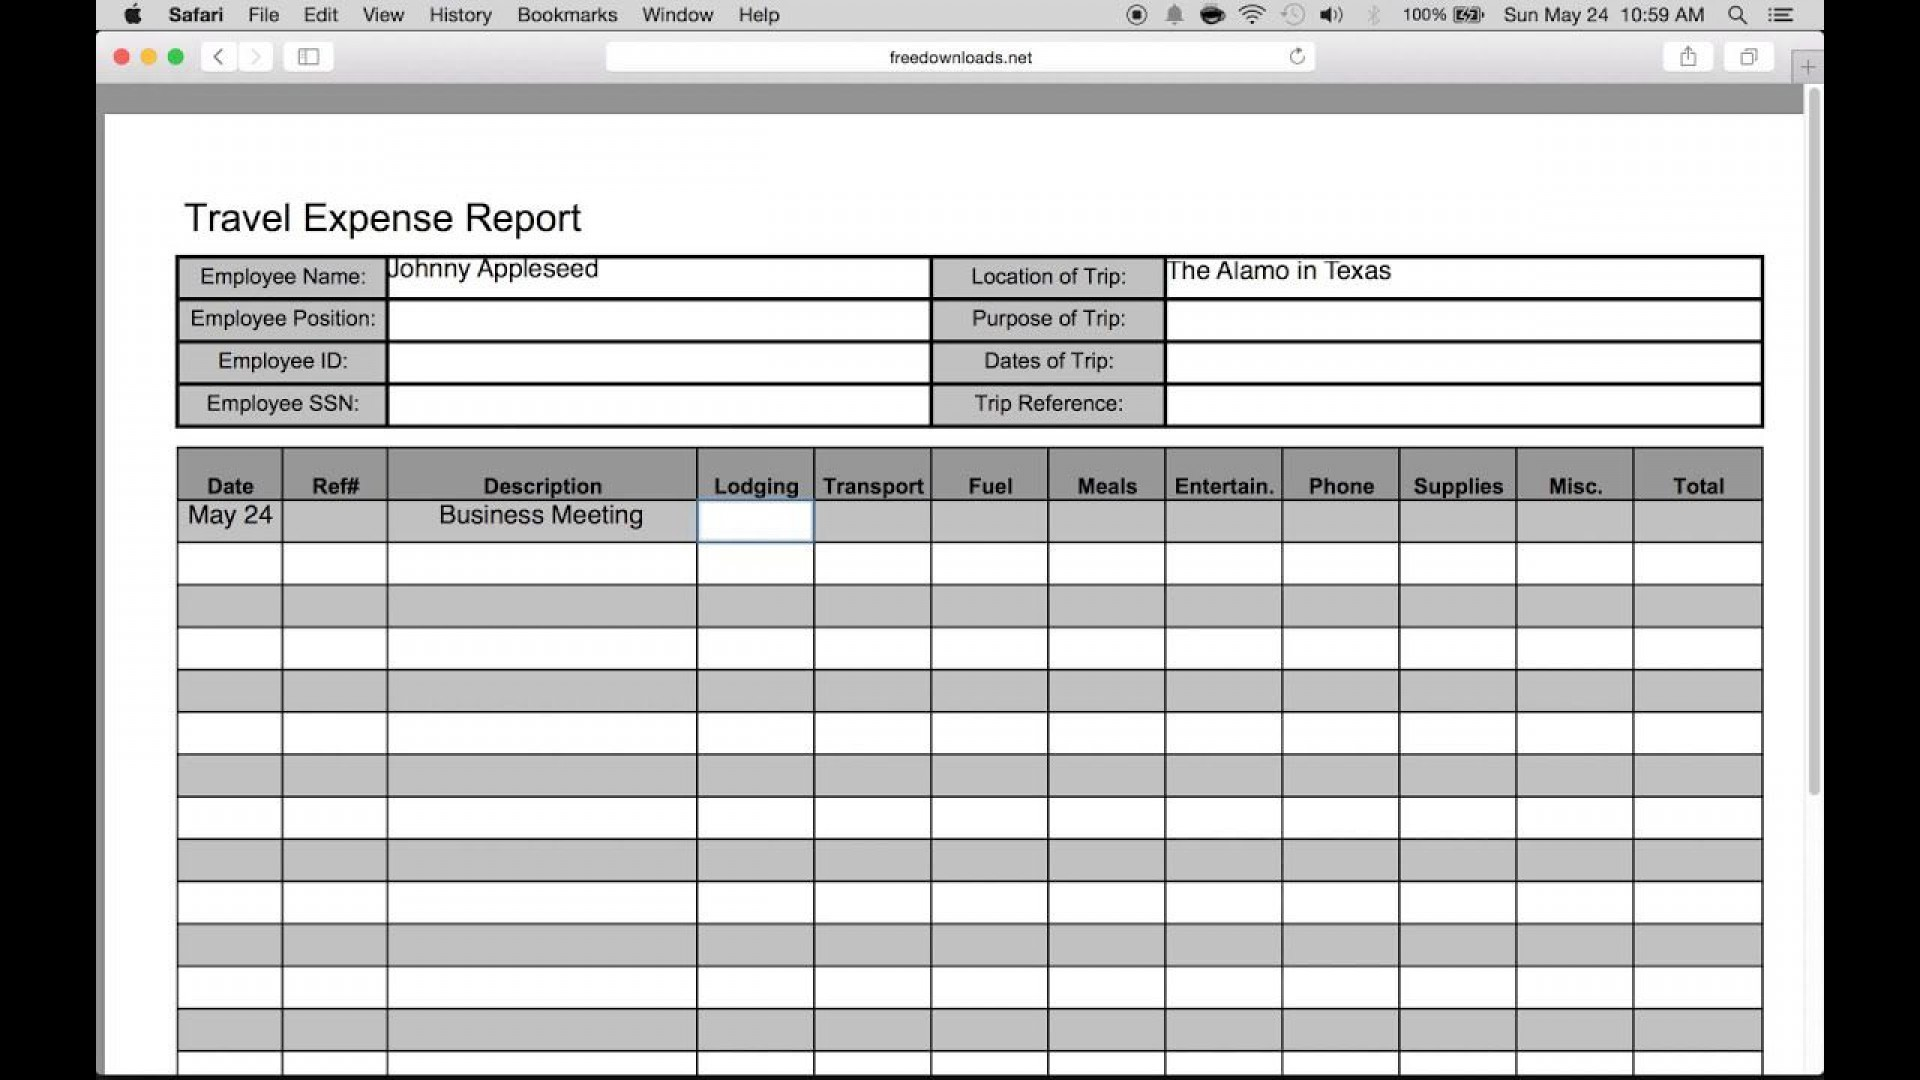 009 Stupendou Expense Report Template Excel High Resolution  Free Format 20101920